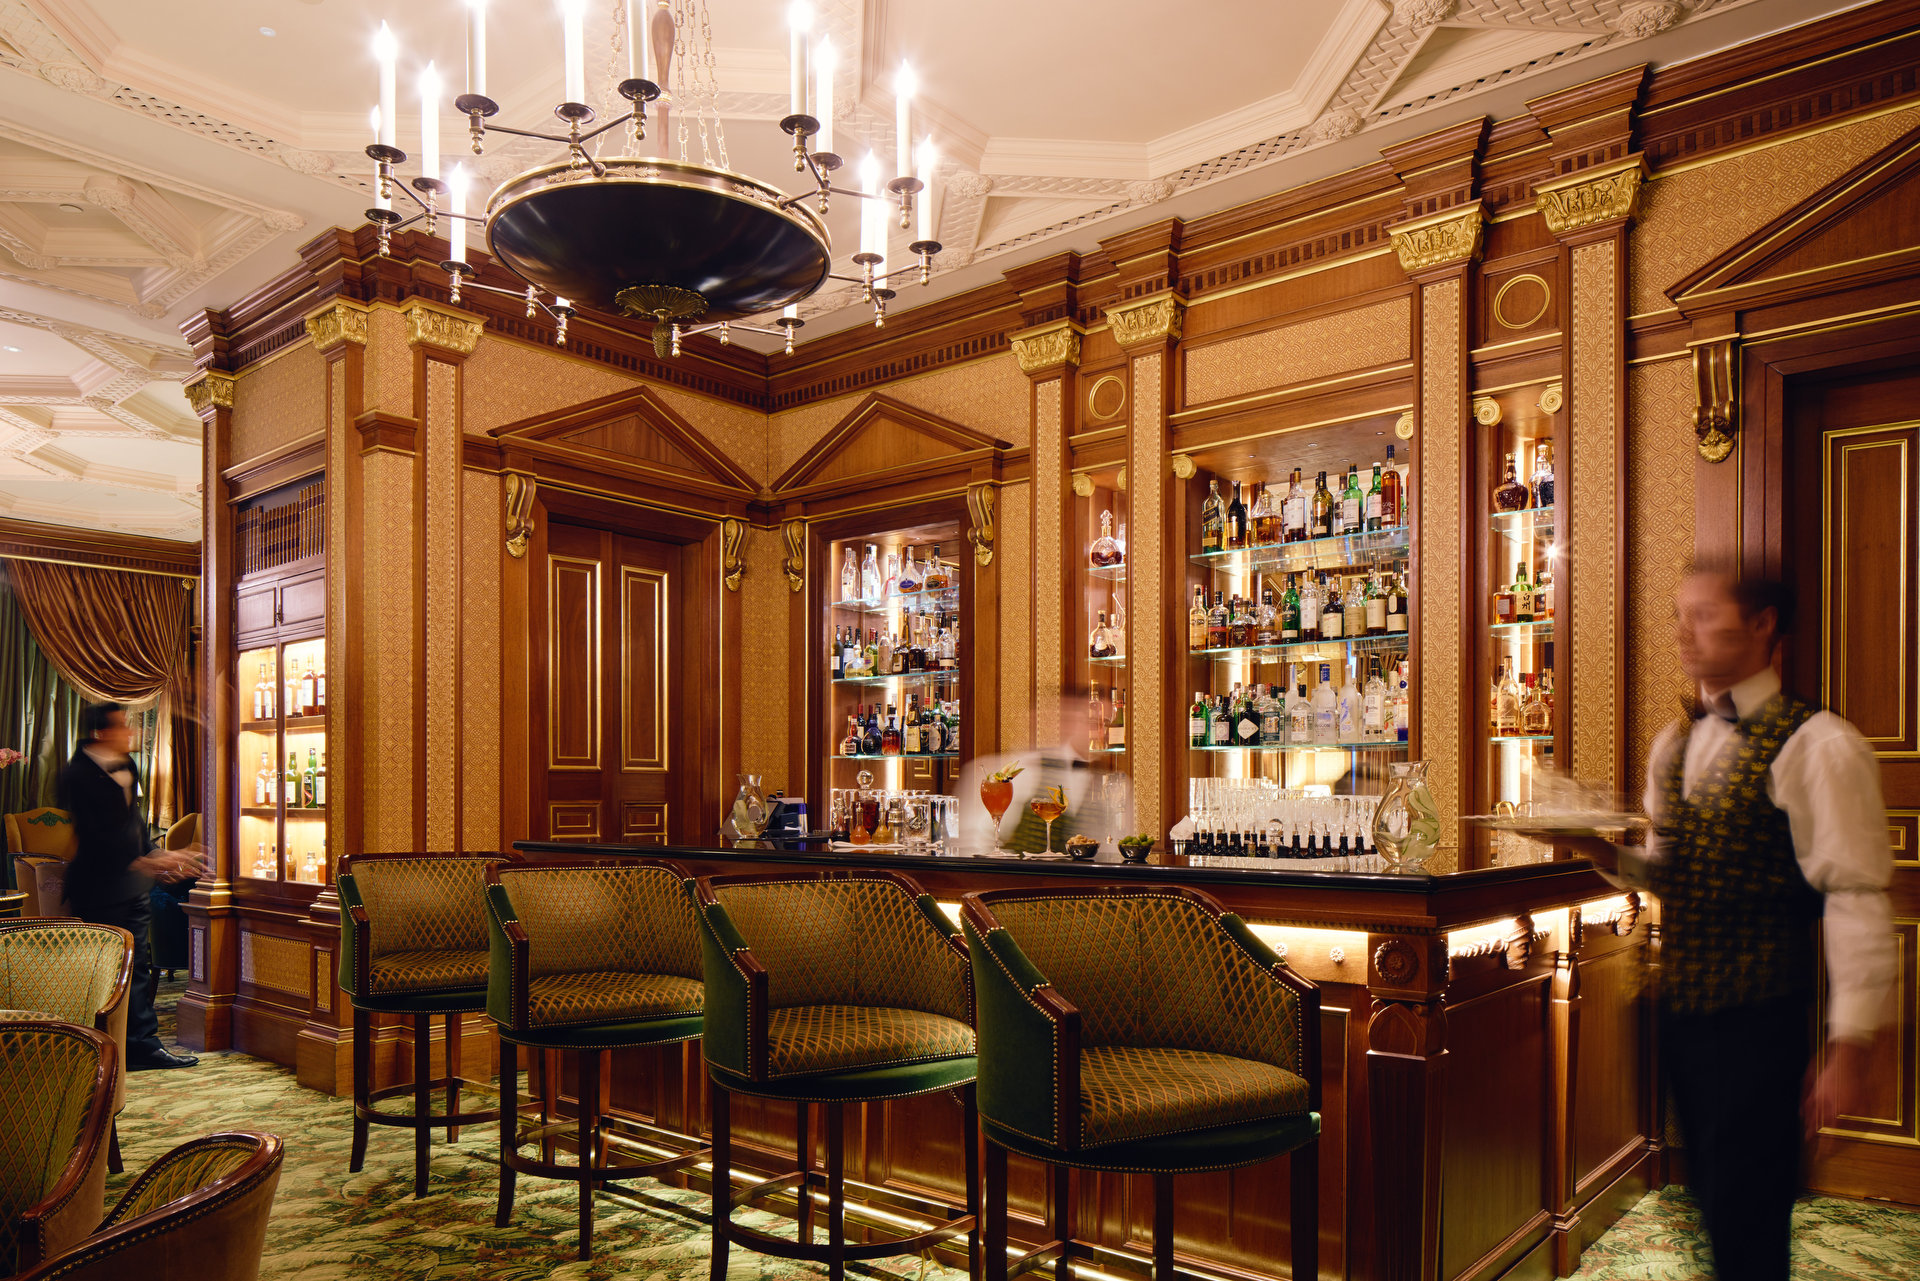 The bar at The Lanesborough Hotel in London